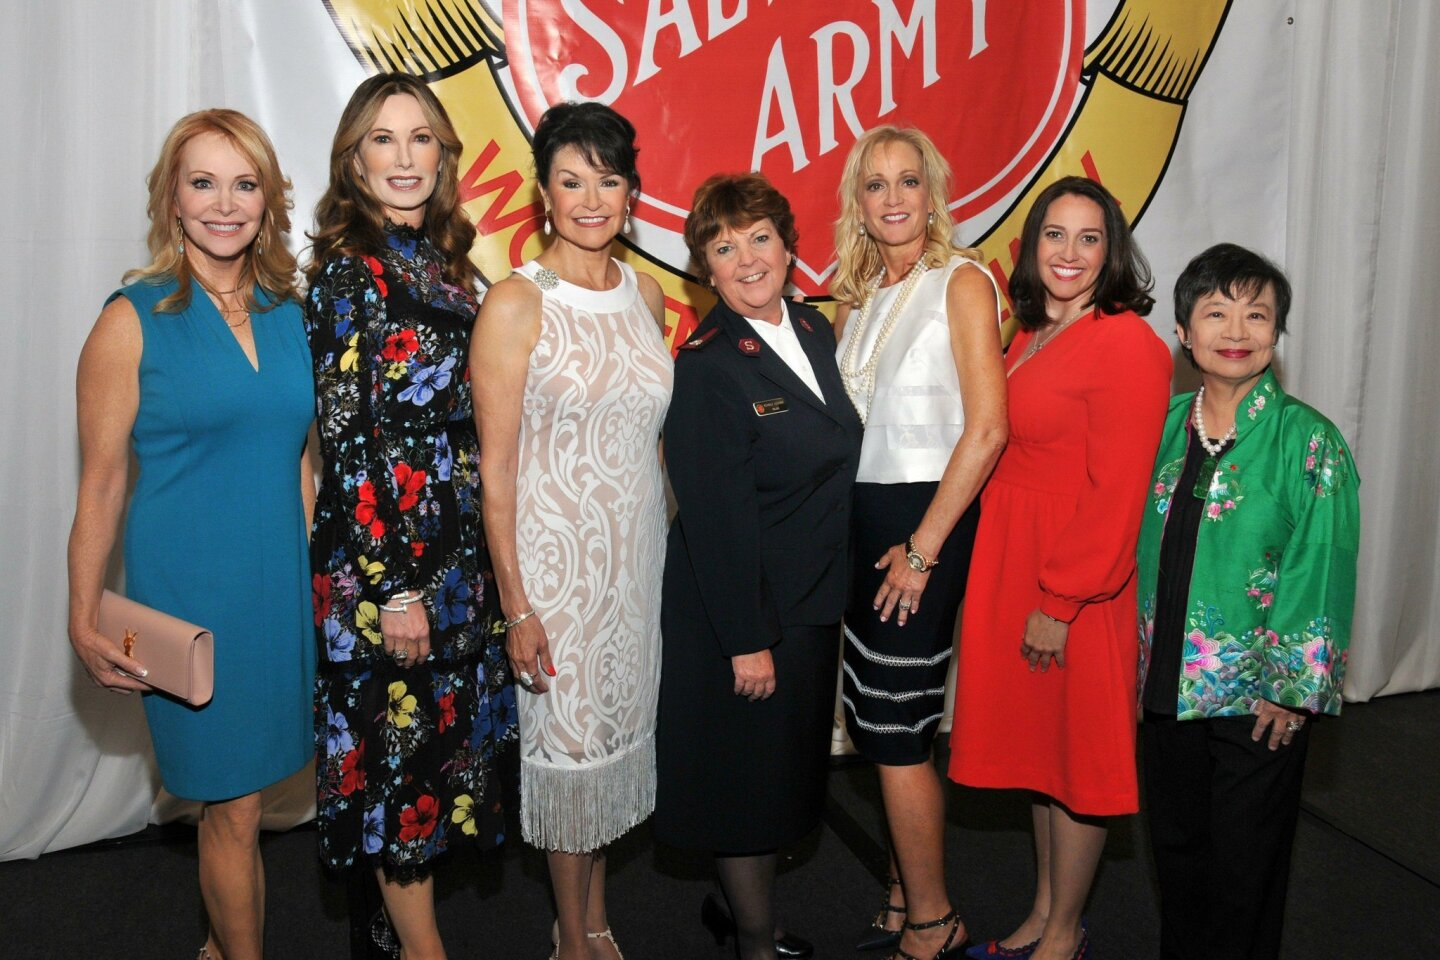 Sandra Maas (honoree), Valerie Cooper (honoree), Arlene Esgate (honoree), Maj. Michele Lescano (Divisional Director of Women's Ministries, Sierra Del Mar Division), Lise Wilson (honoree), Rachel Peniche (honoree), Dr. Lilly Cheng (honoree). Photos by Vincent Andrunas